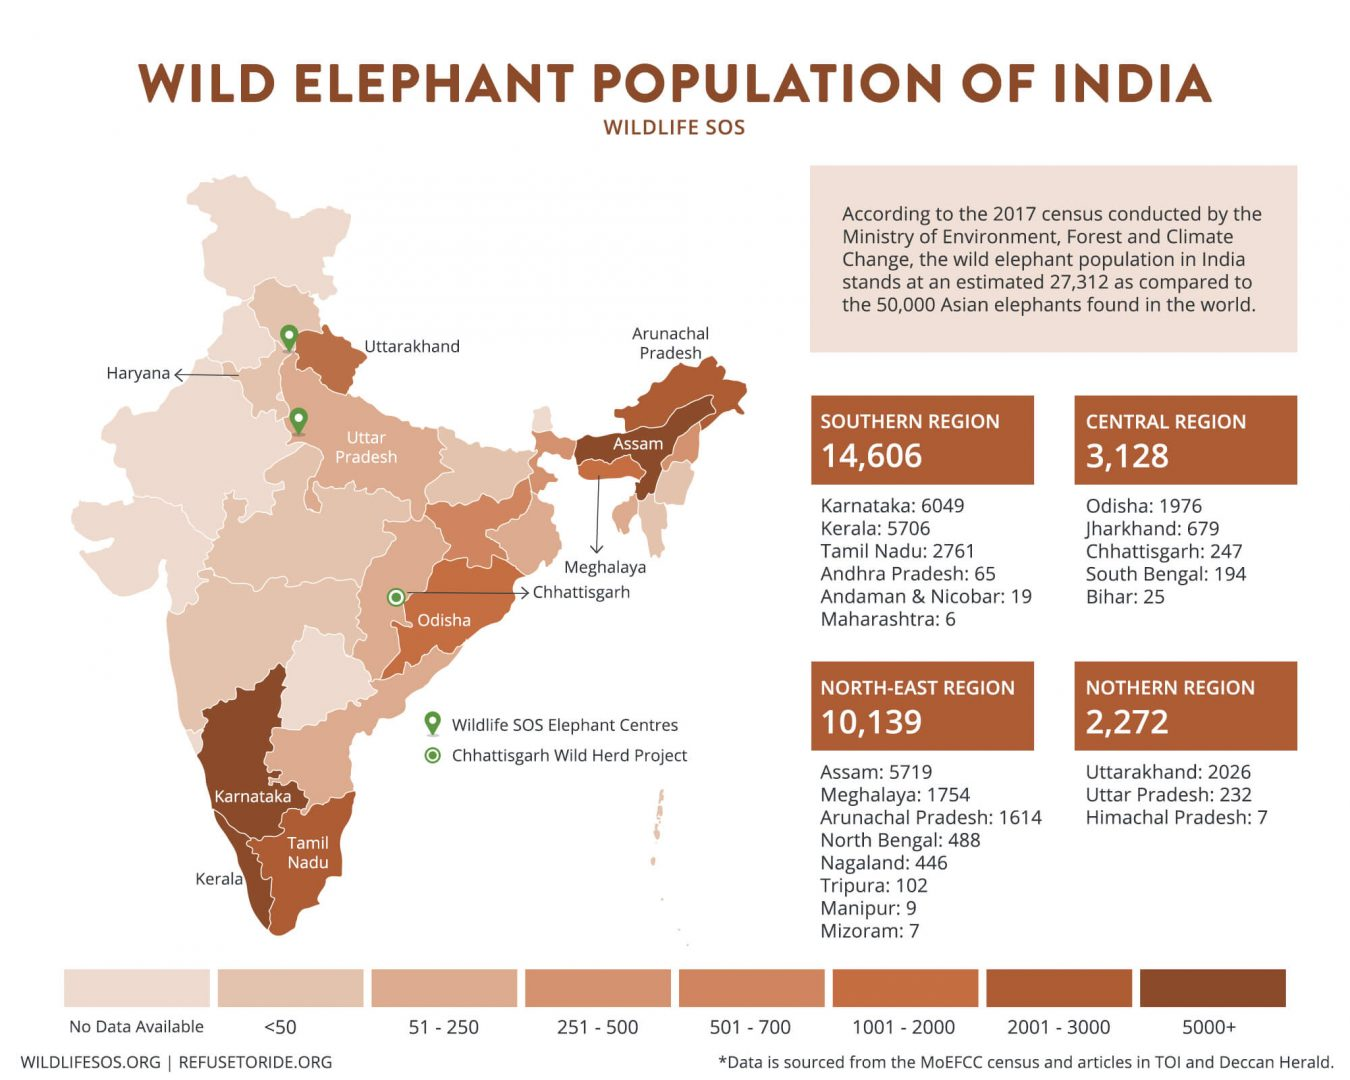 The wild elephant population in India as of 2017.